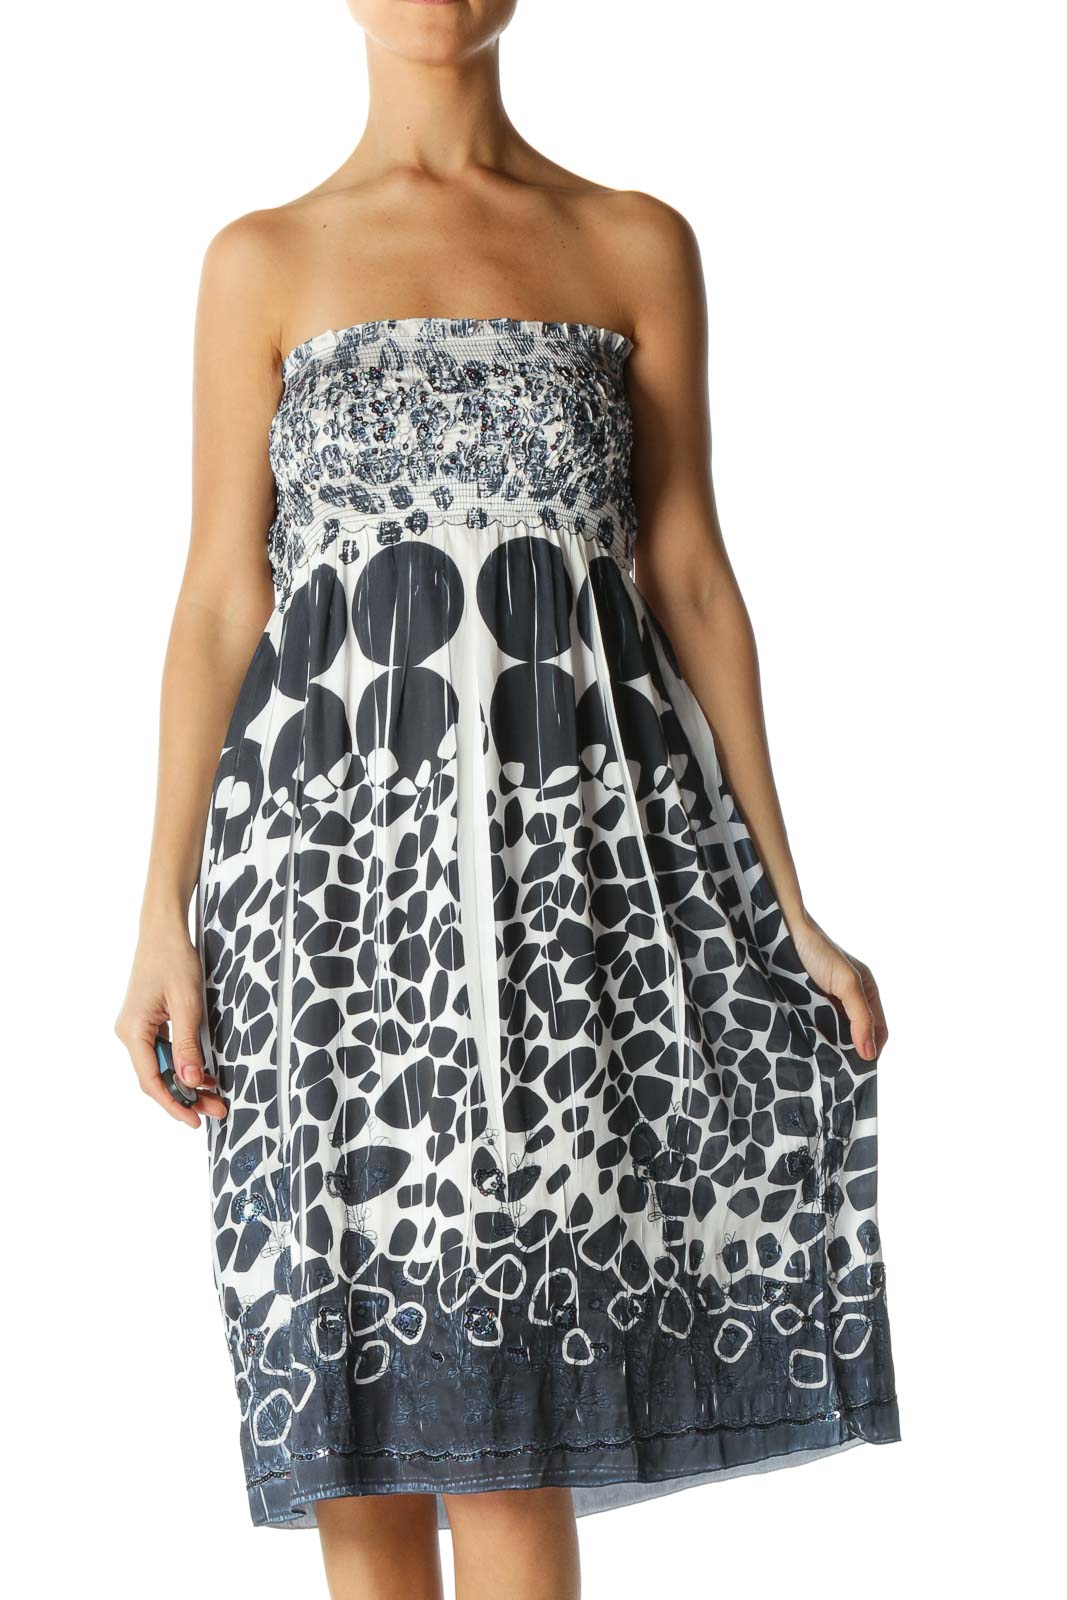 Blue and White Strapless Sequined Dress Front